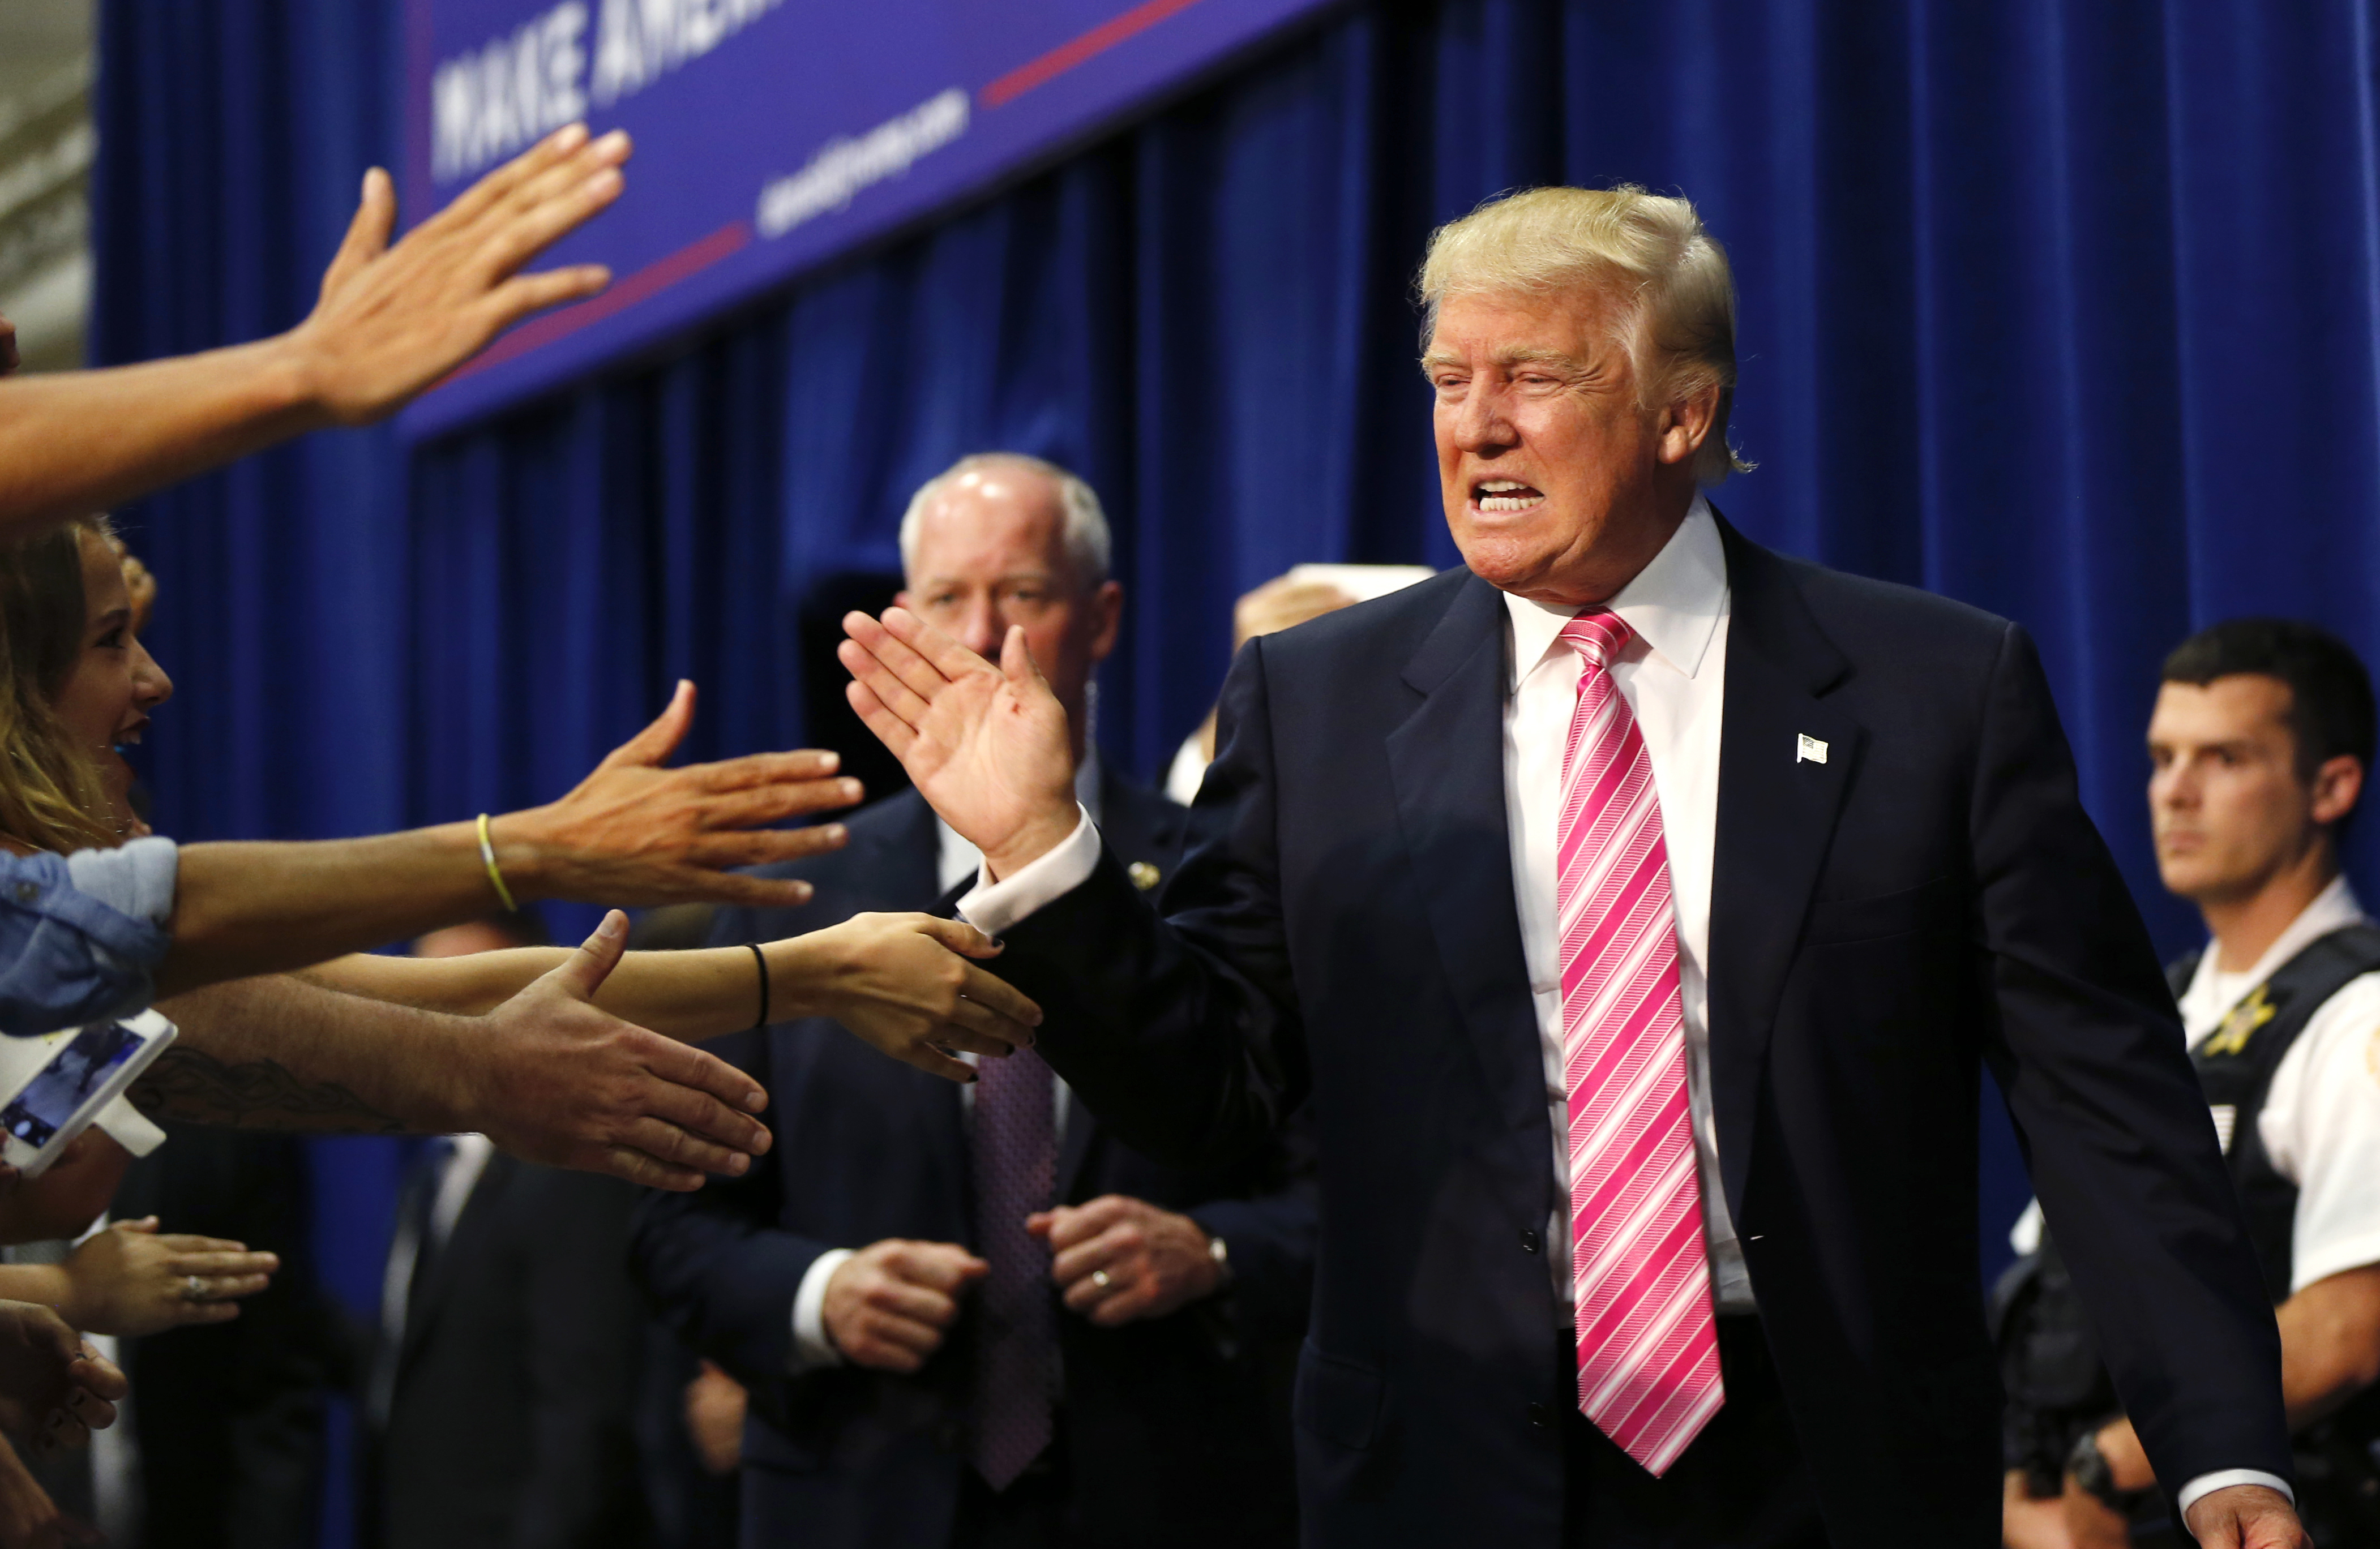 NationWorld41-1 Republican presidential candidate Donald Trump greets the crowd as he arrives to speak at a campaign rally in Fredericksburg, Va., earlier this month.